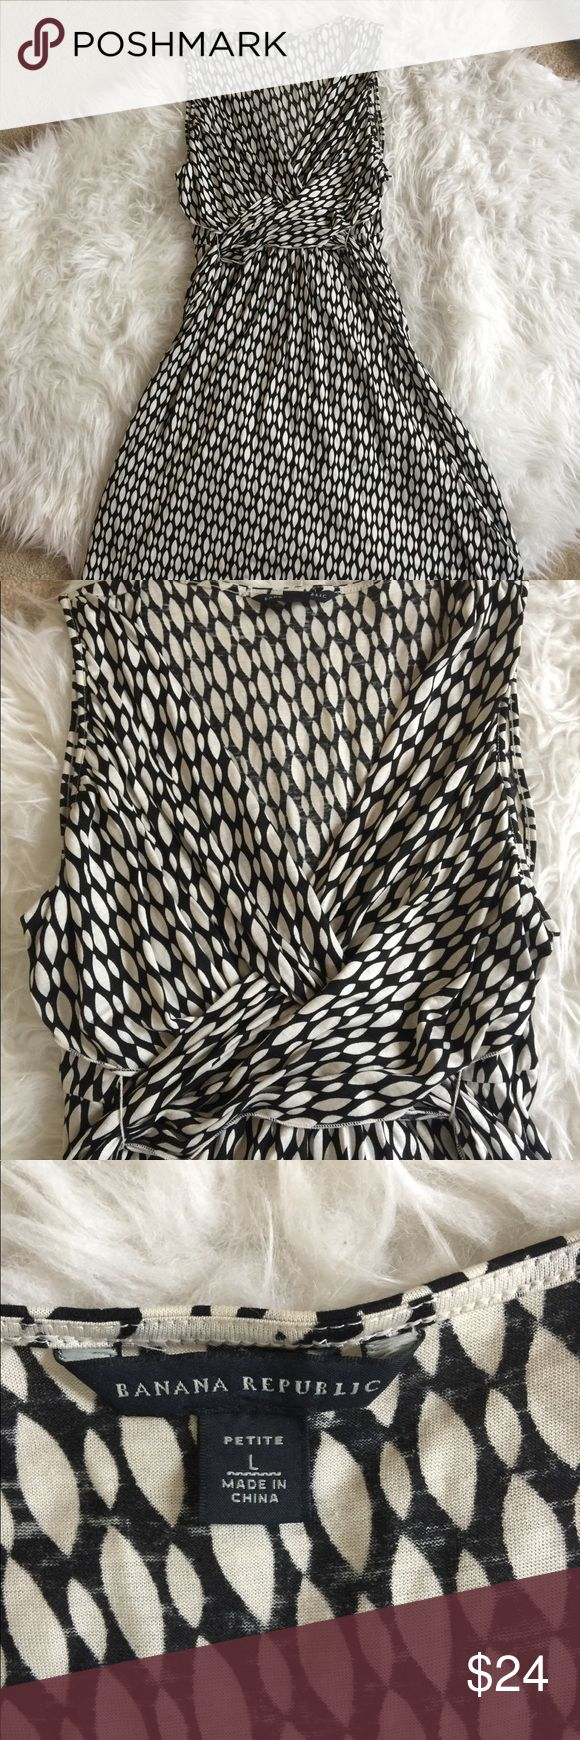 Banana Republic Silk & Linen Faux Wrap Dress So pretty! Faux wrap dress from Banana Republic. Black and white design. Belt around back to tighten as you please to give more curve. Made of silk and linen. Size Petite Large. Banana Republic Dresses